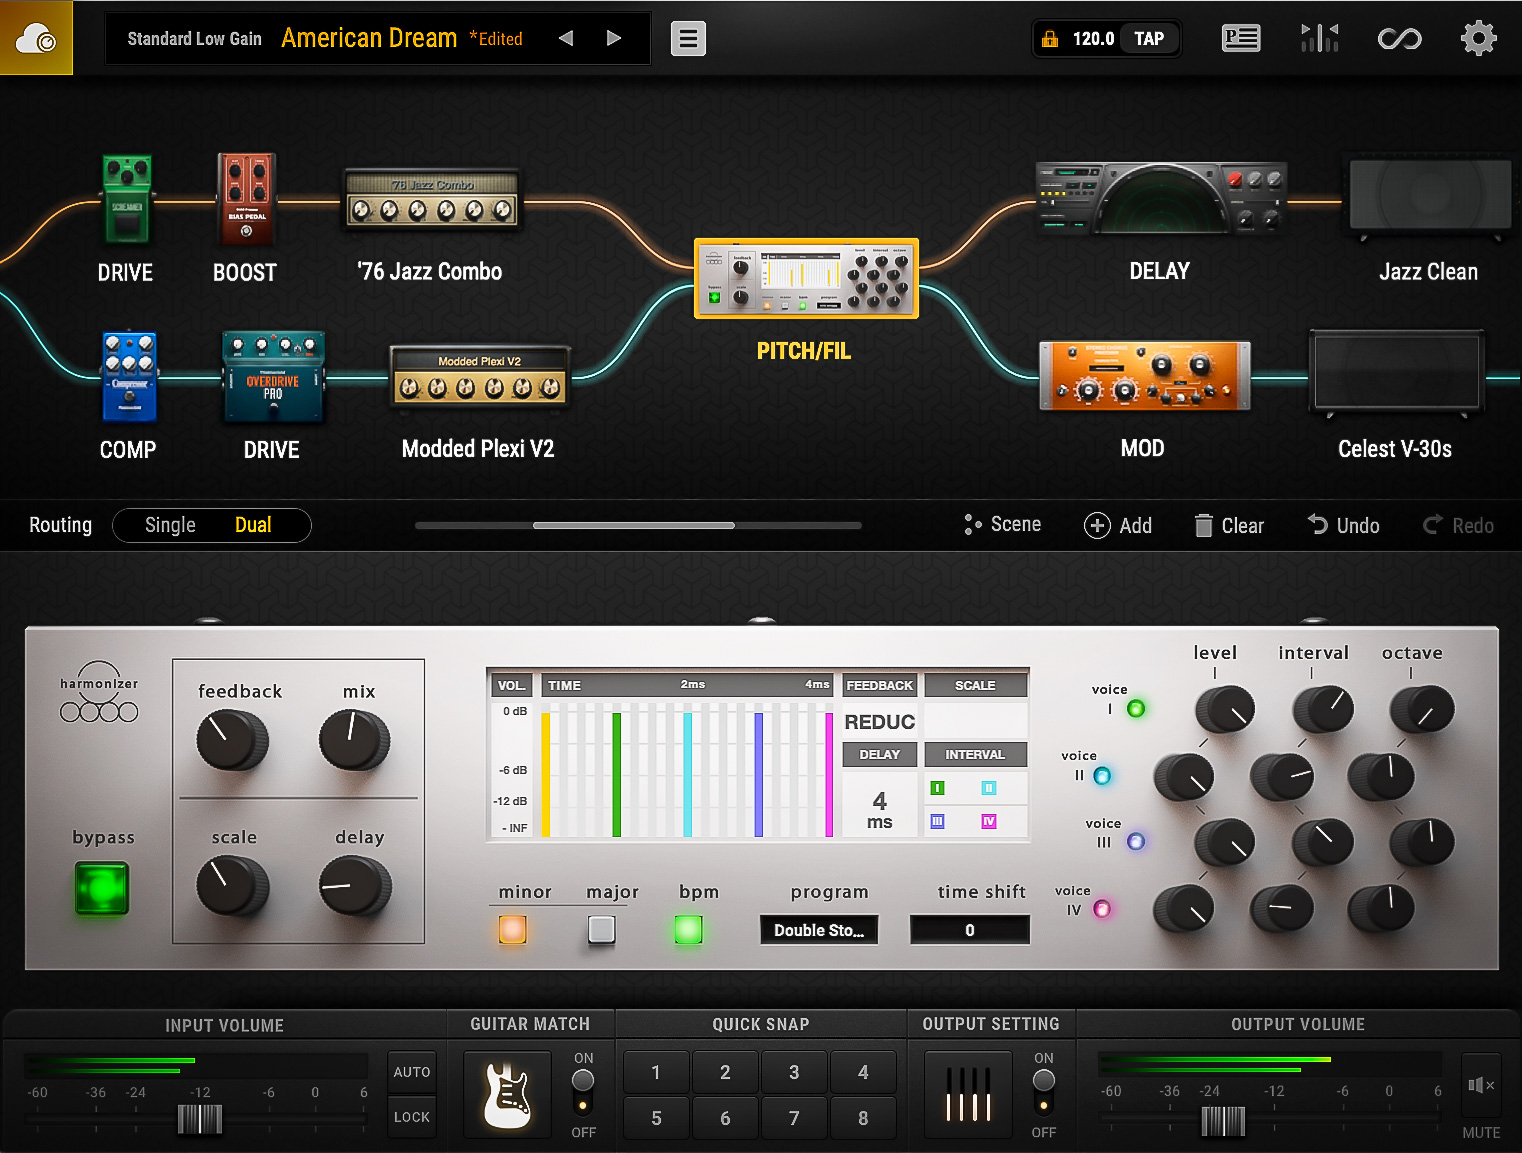 KVR: BIAS FX 2 by Positive Grid - Guitar Amp and FX Modeling